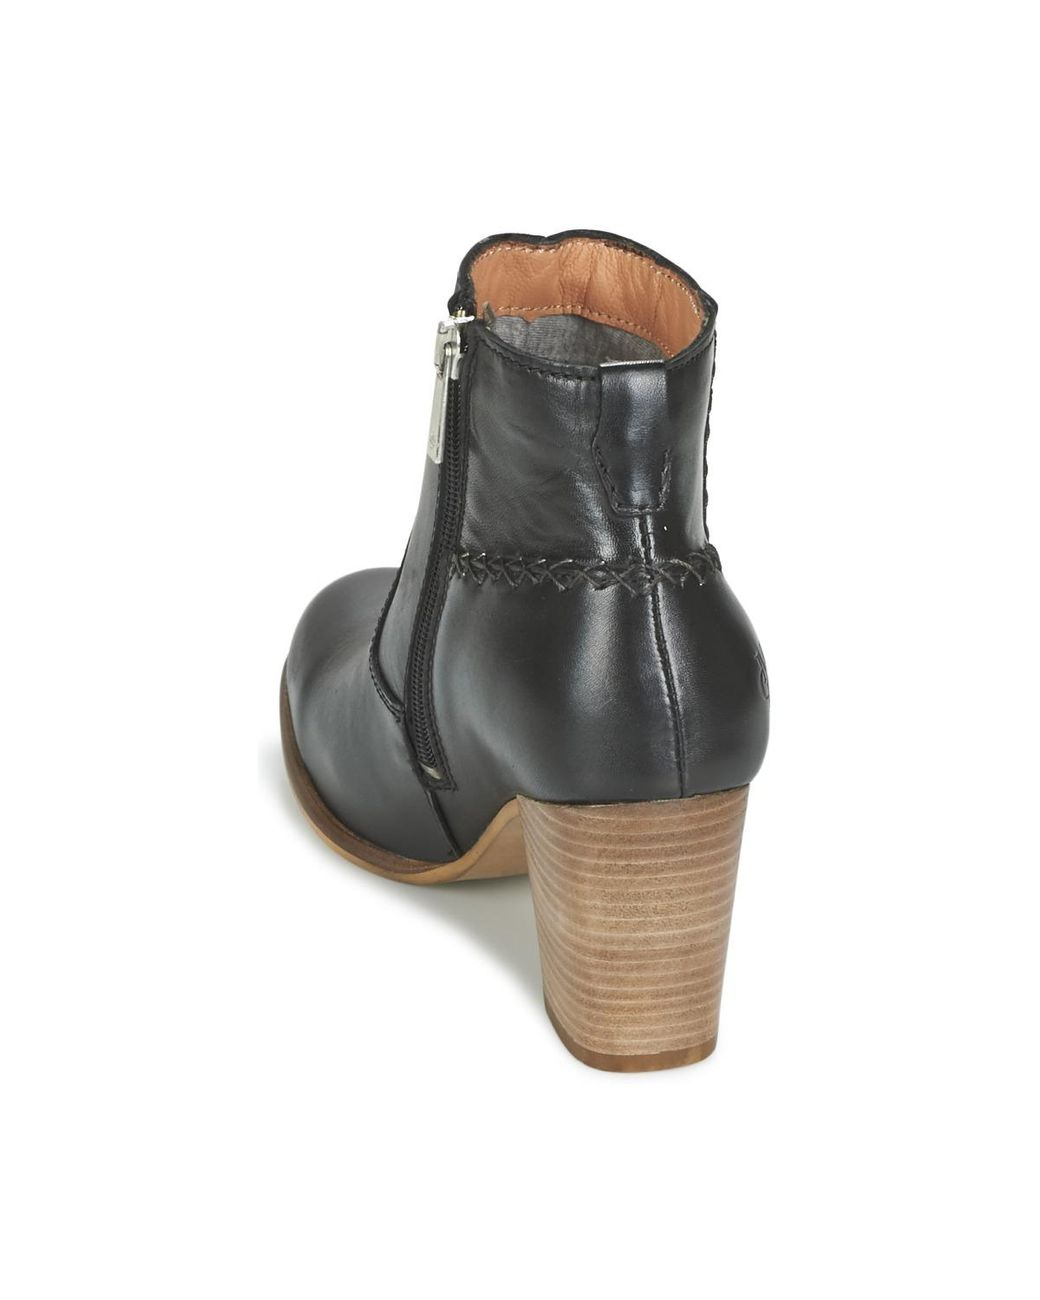 Marc O'polo Leather Jaddi Baka Low Ankle Boots in Black